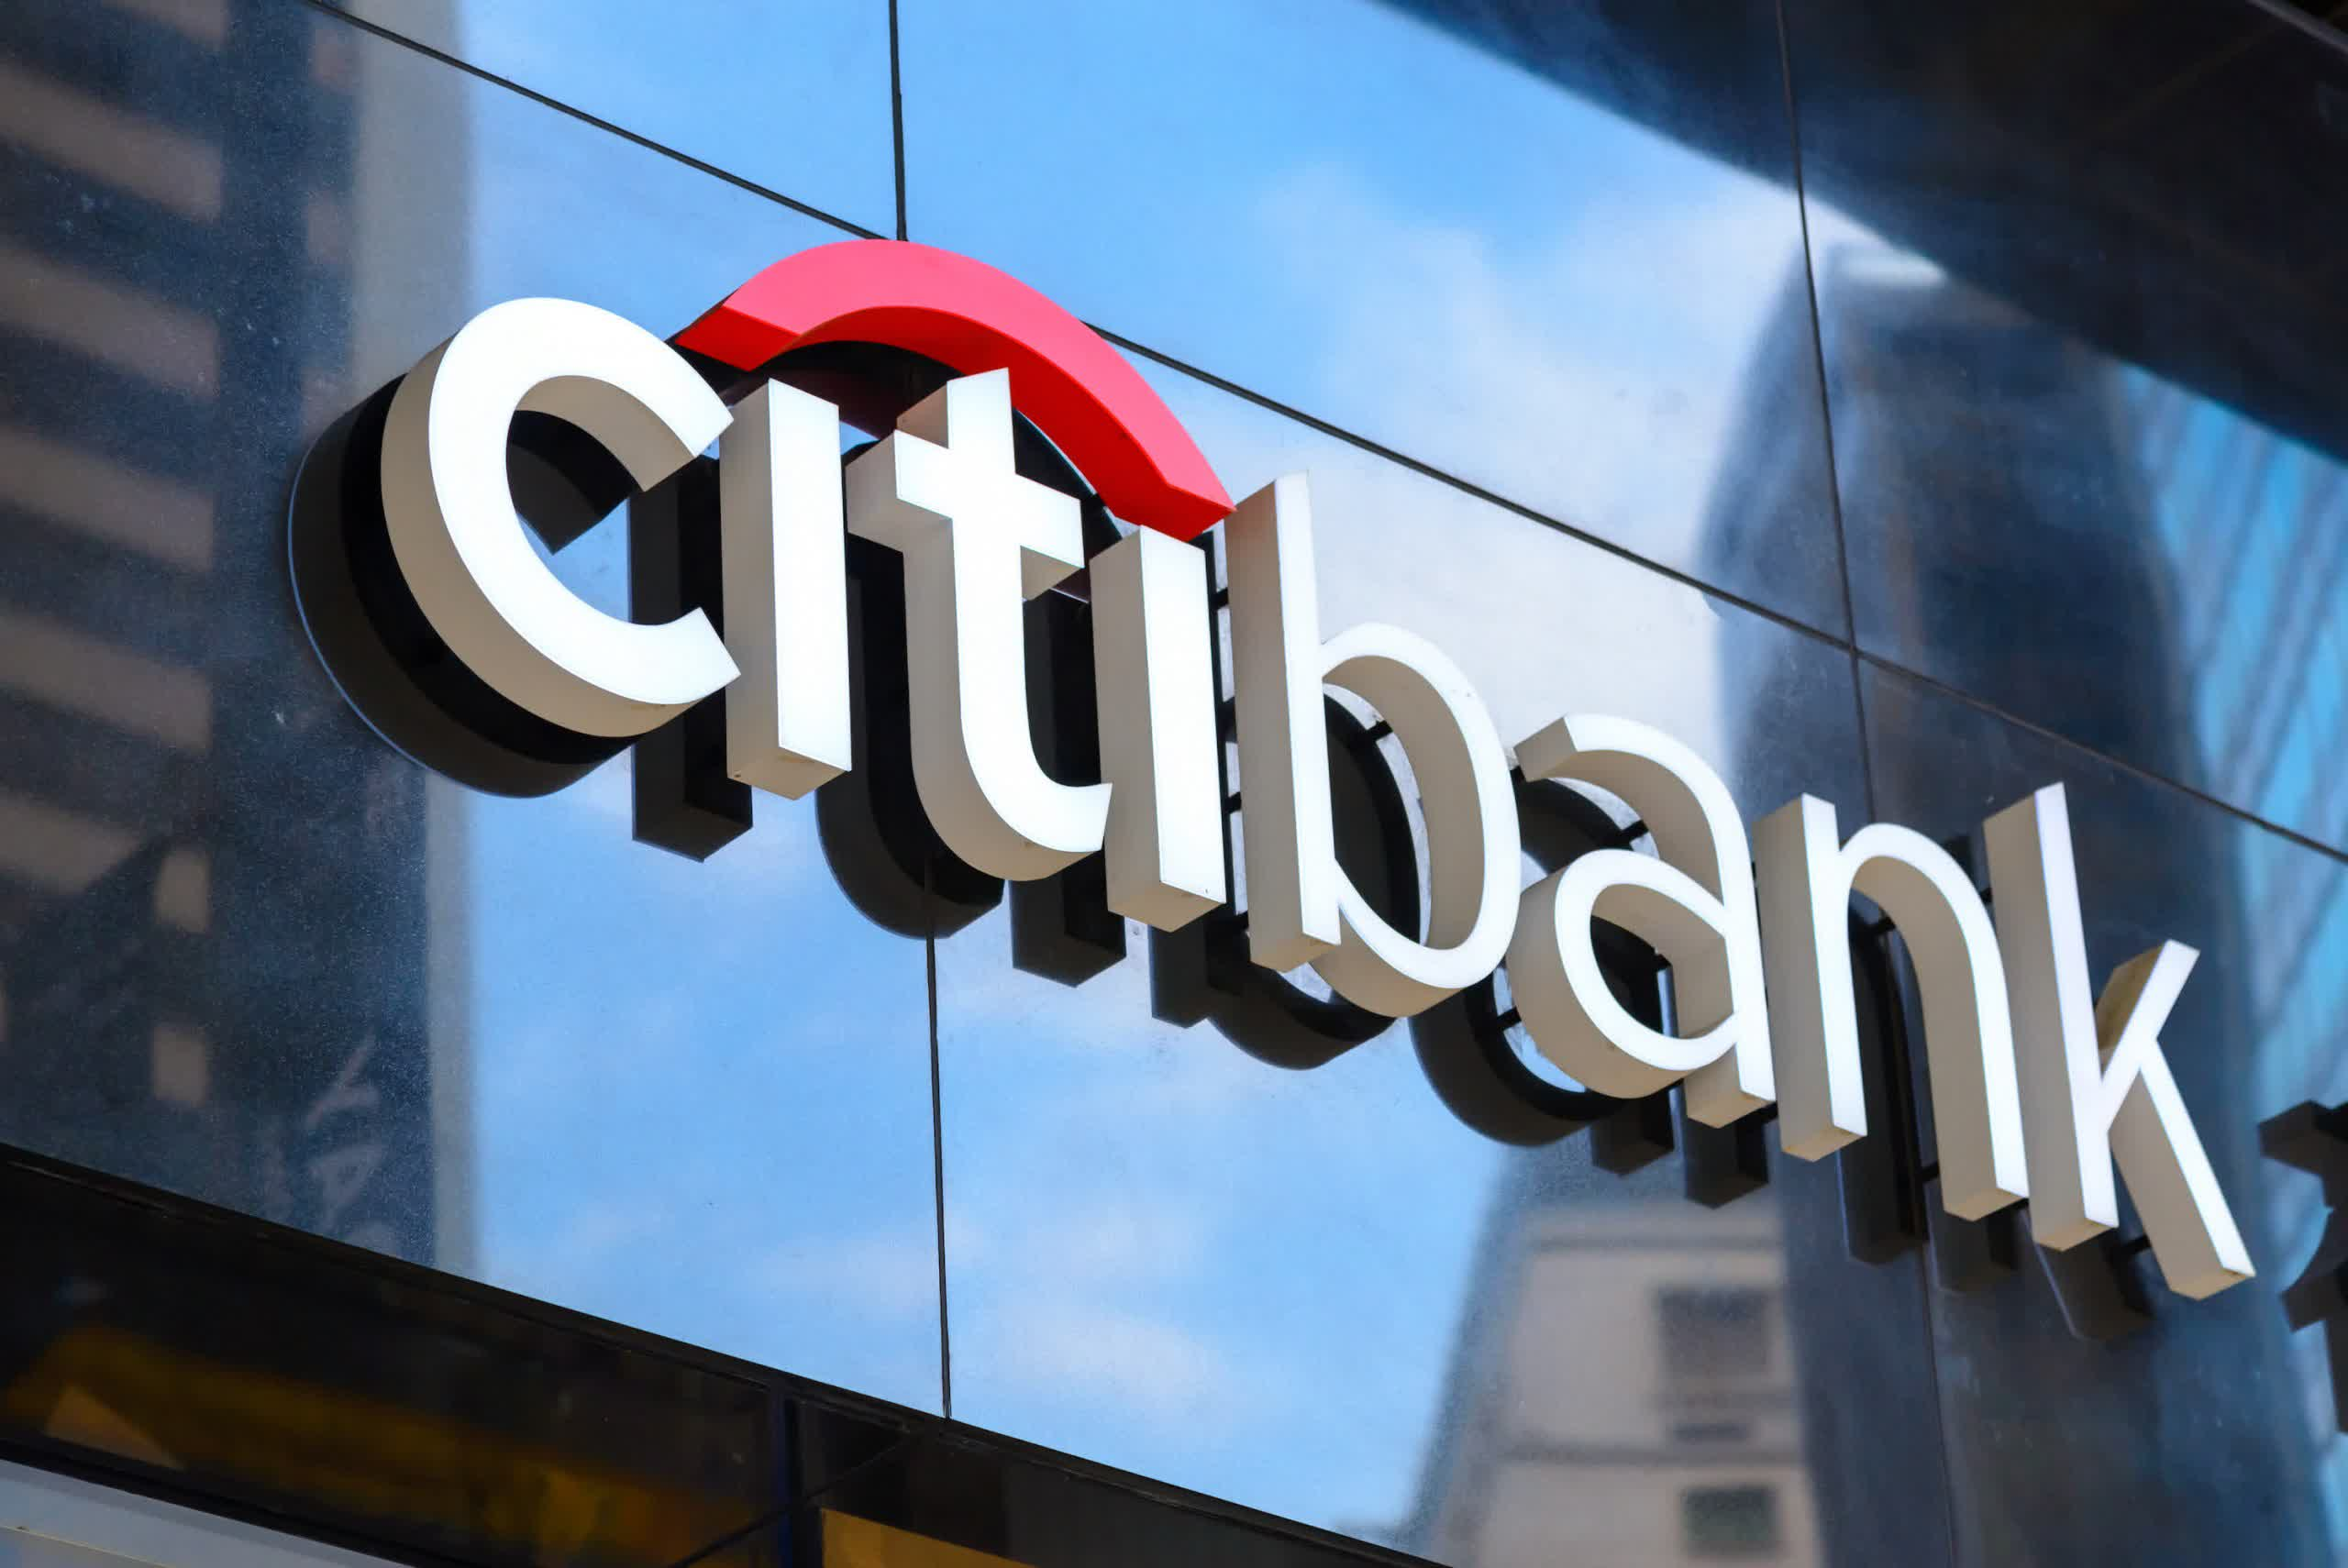 Clunky software with a confusing UI just cost Citibank $500 million